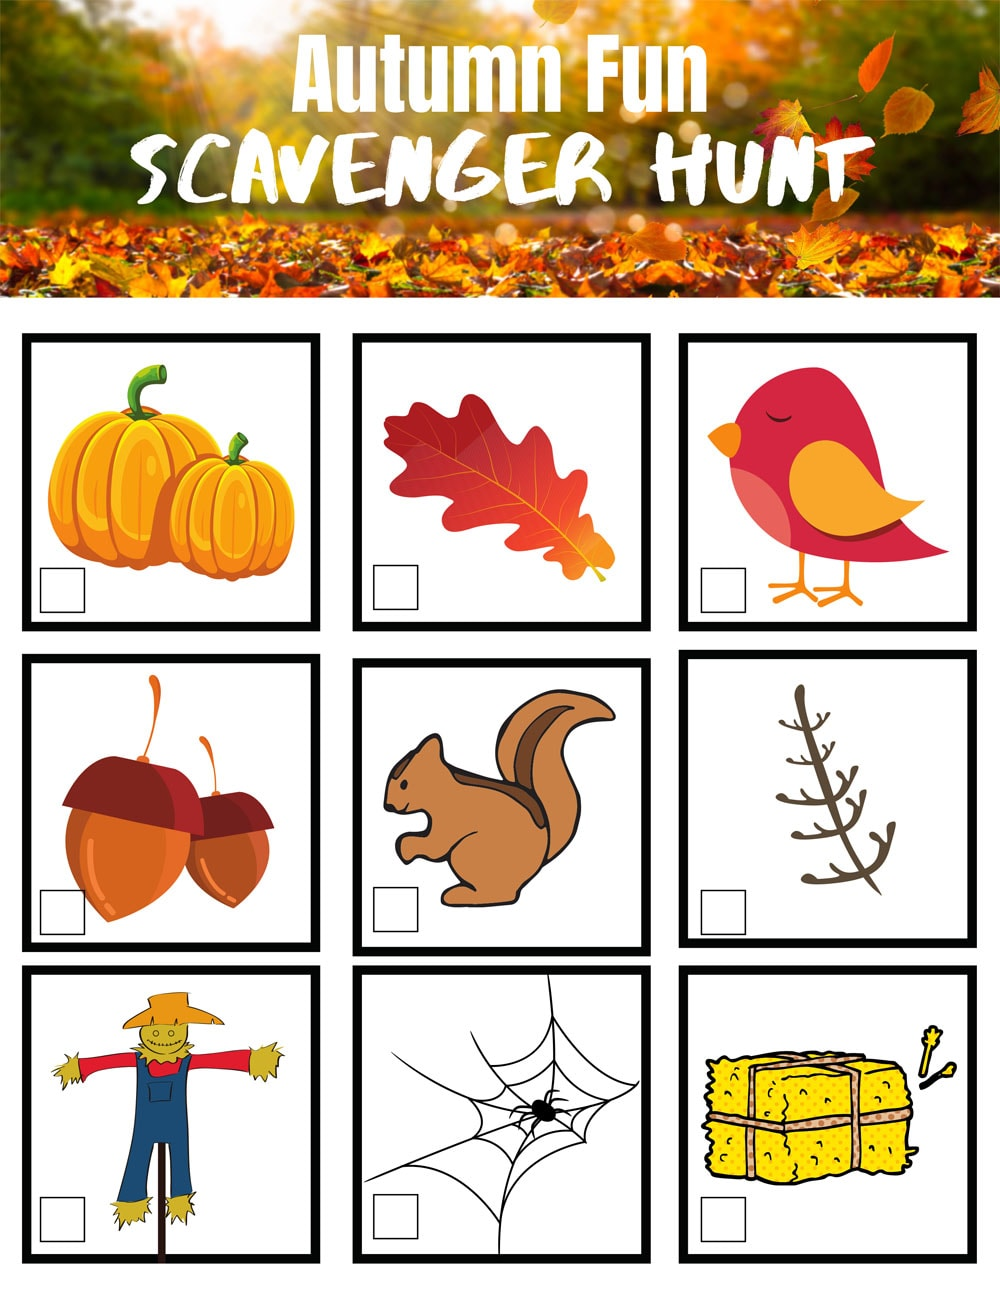 scavenger hunt list with pictures